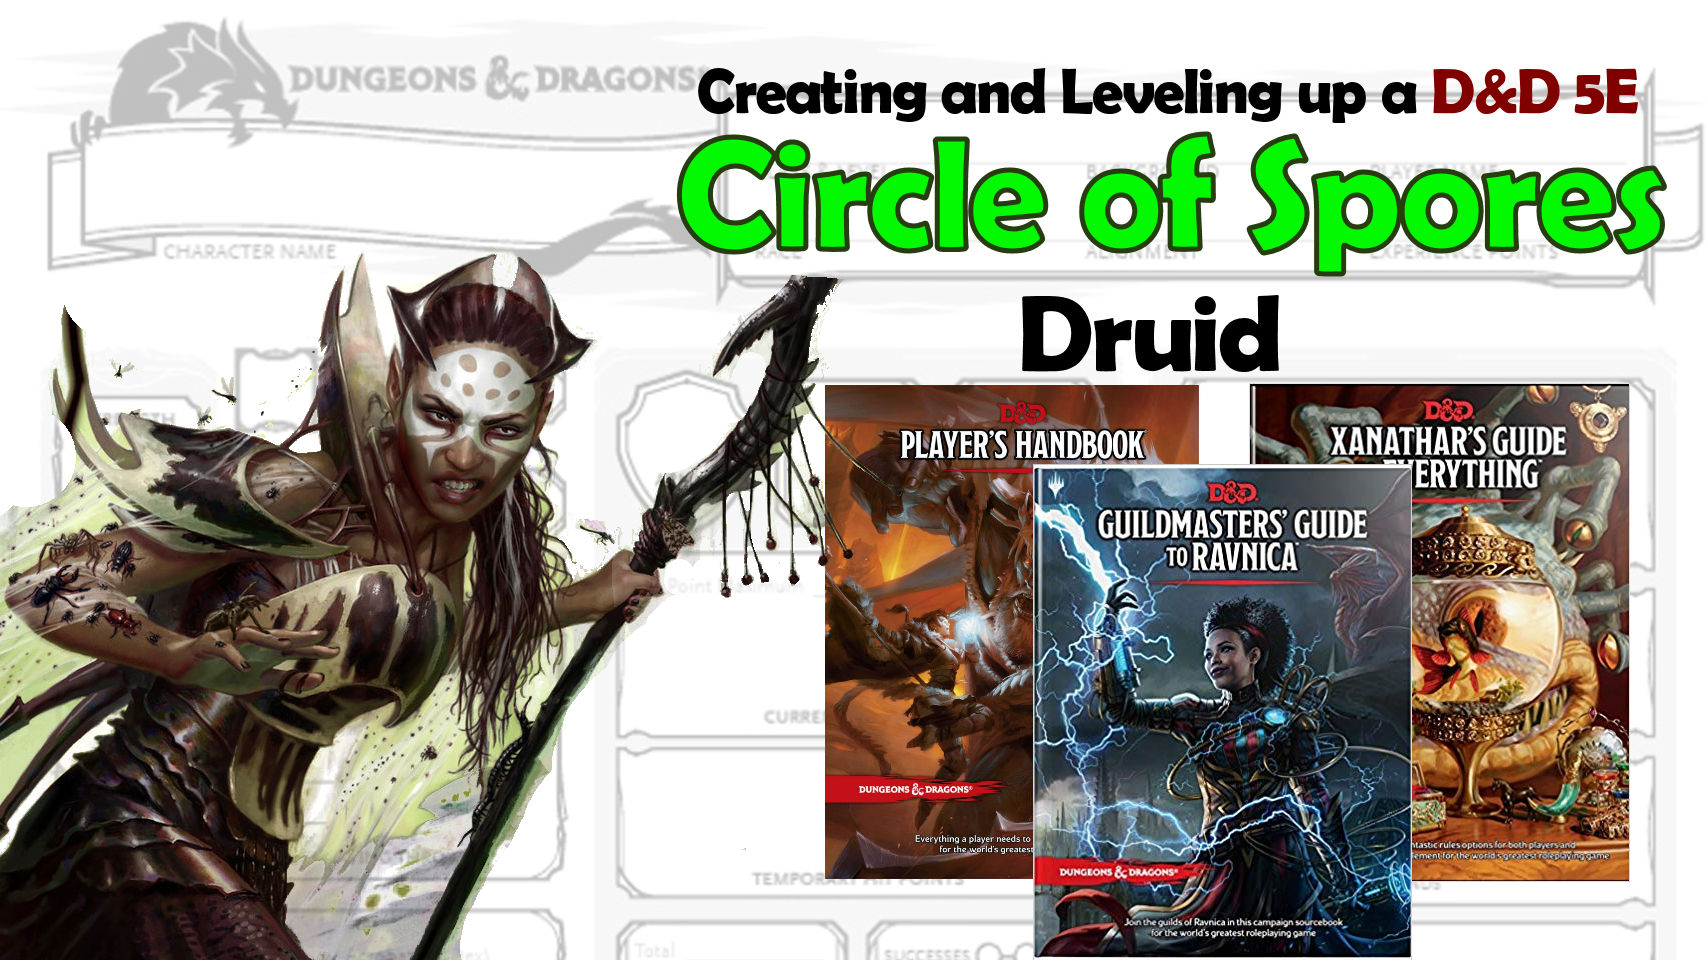 D&D 5E Circle of Spores Druid – Guildmasters' Guide to Ravnica